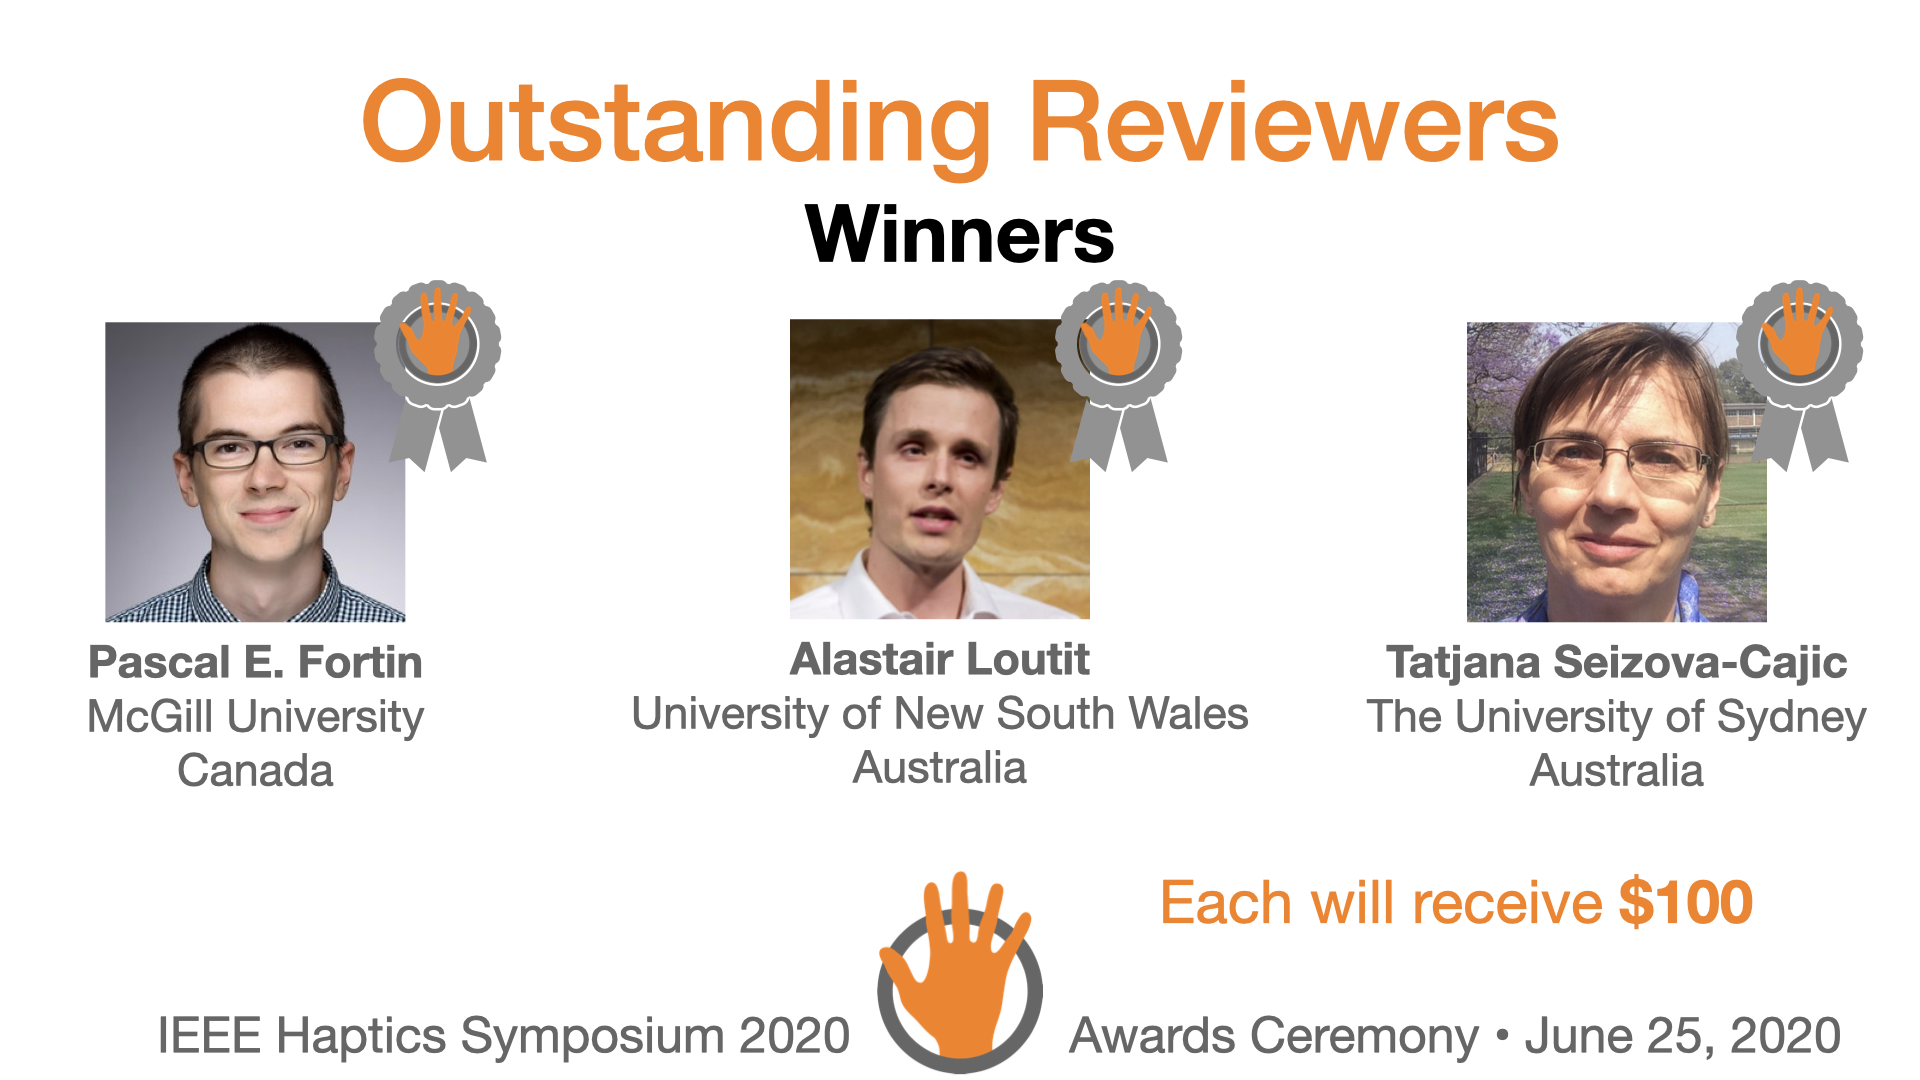 An award slide featuring the three winners of the outstanding reviewers award